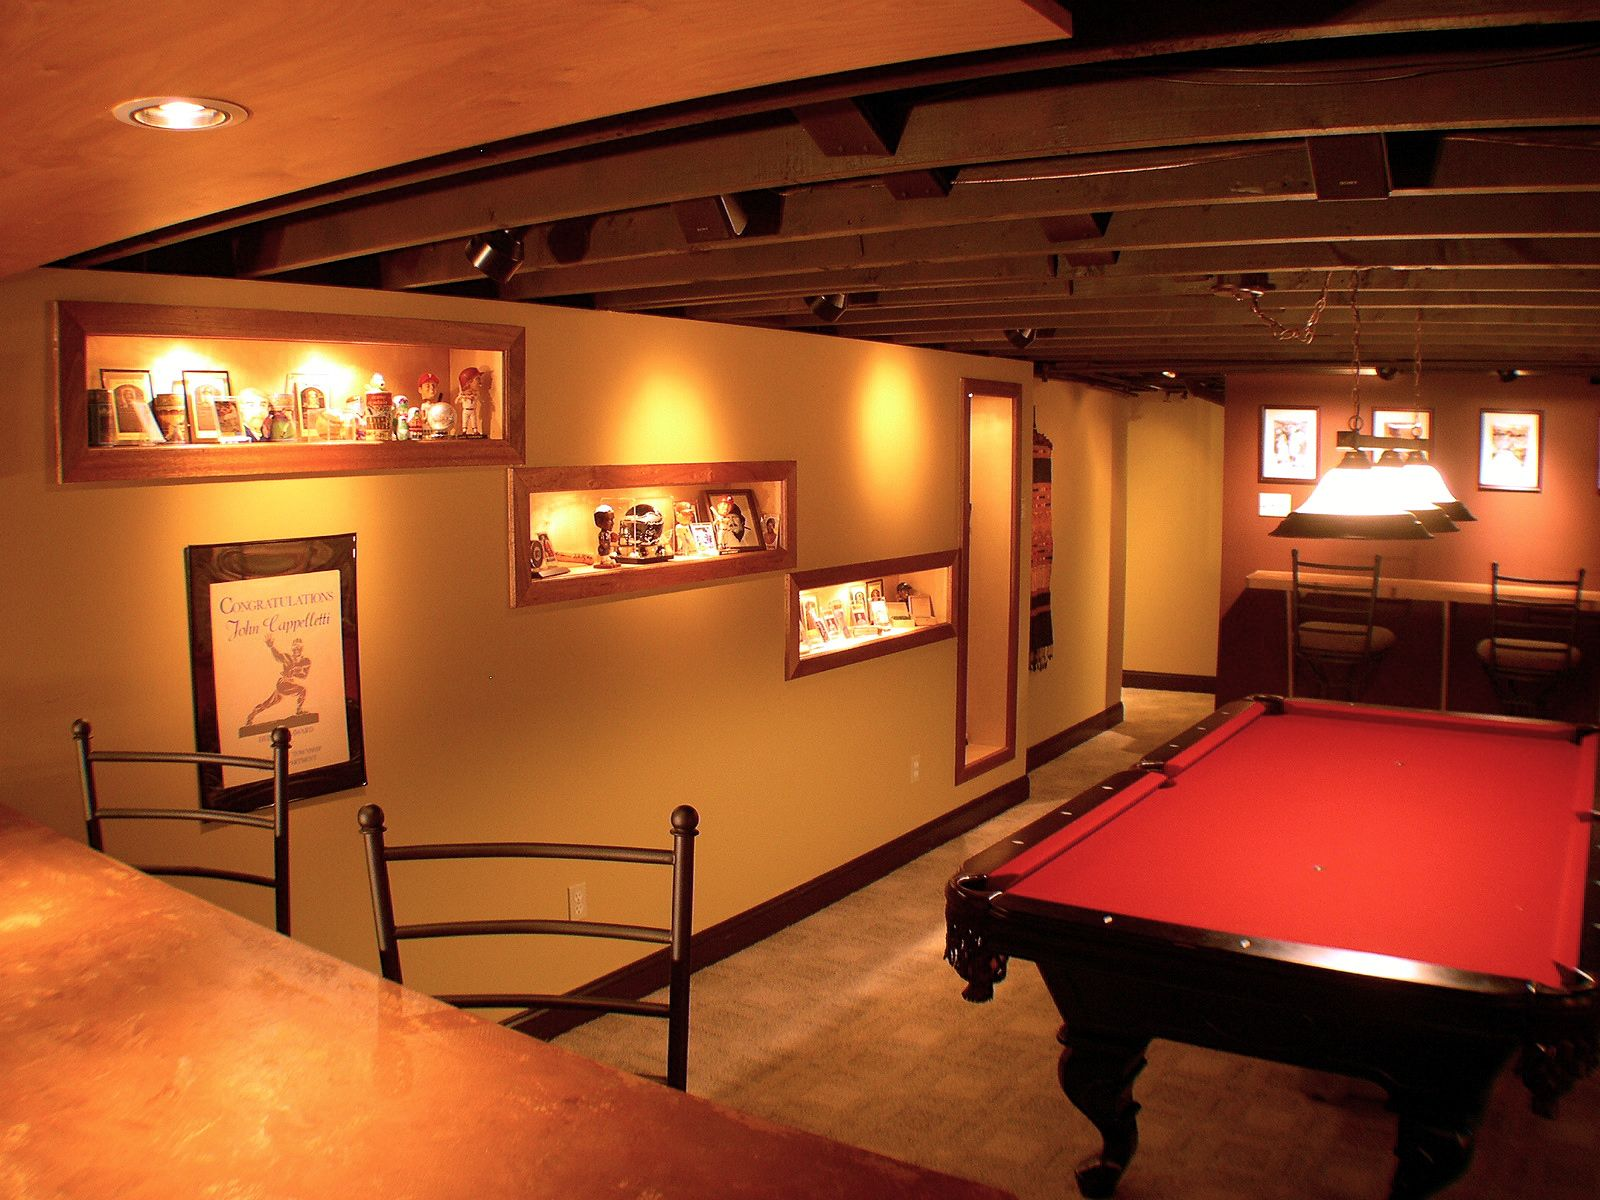 This Man Cave Features A Pool Table And Bar Surrounded By